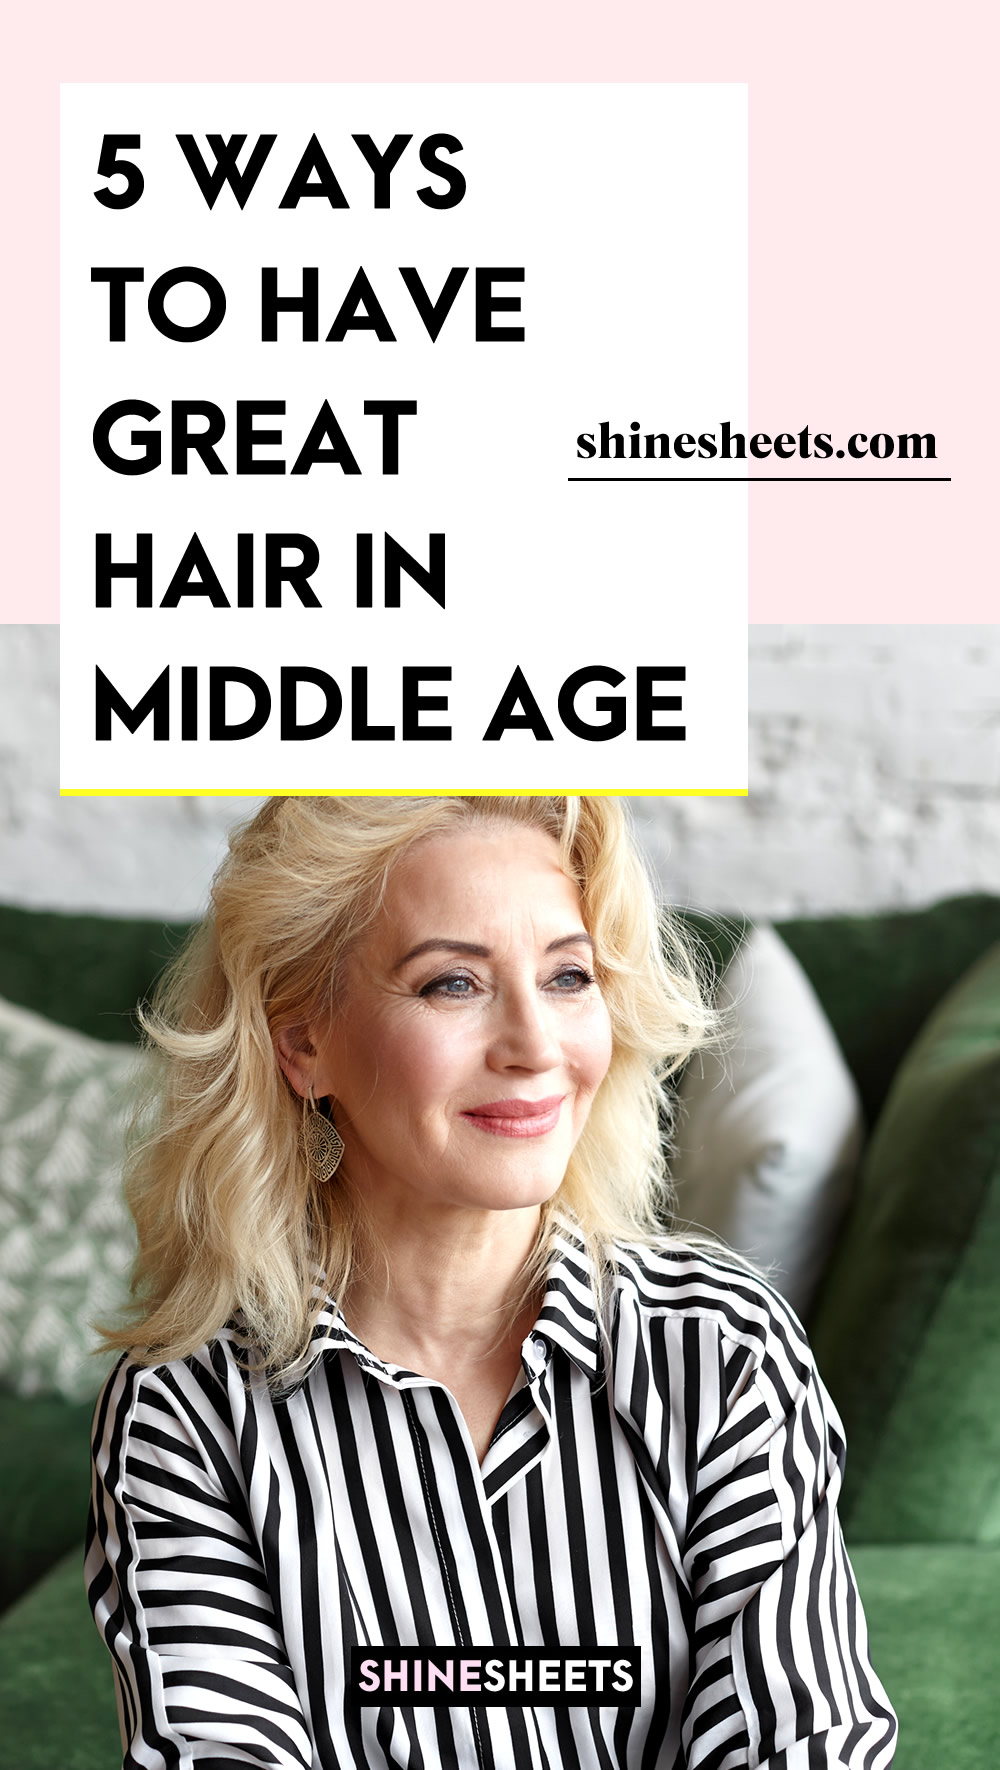 MIDDLE AGED WOMAN WITH GREAT HAIR